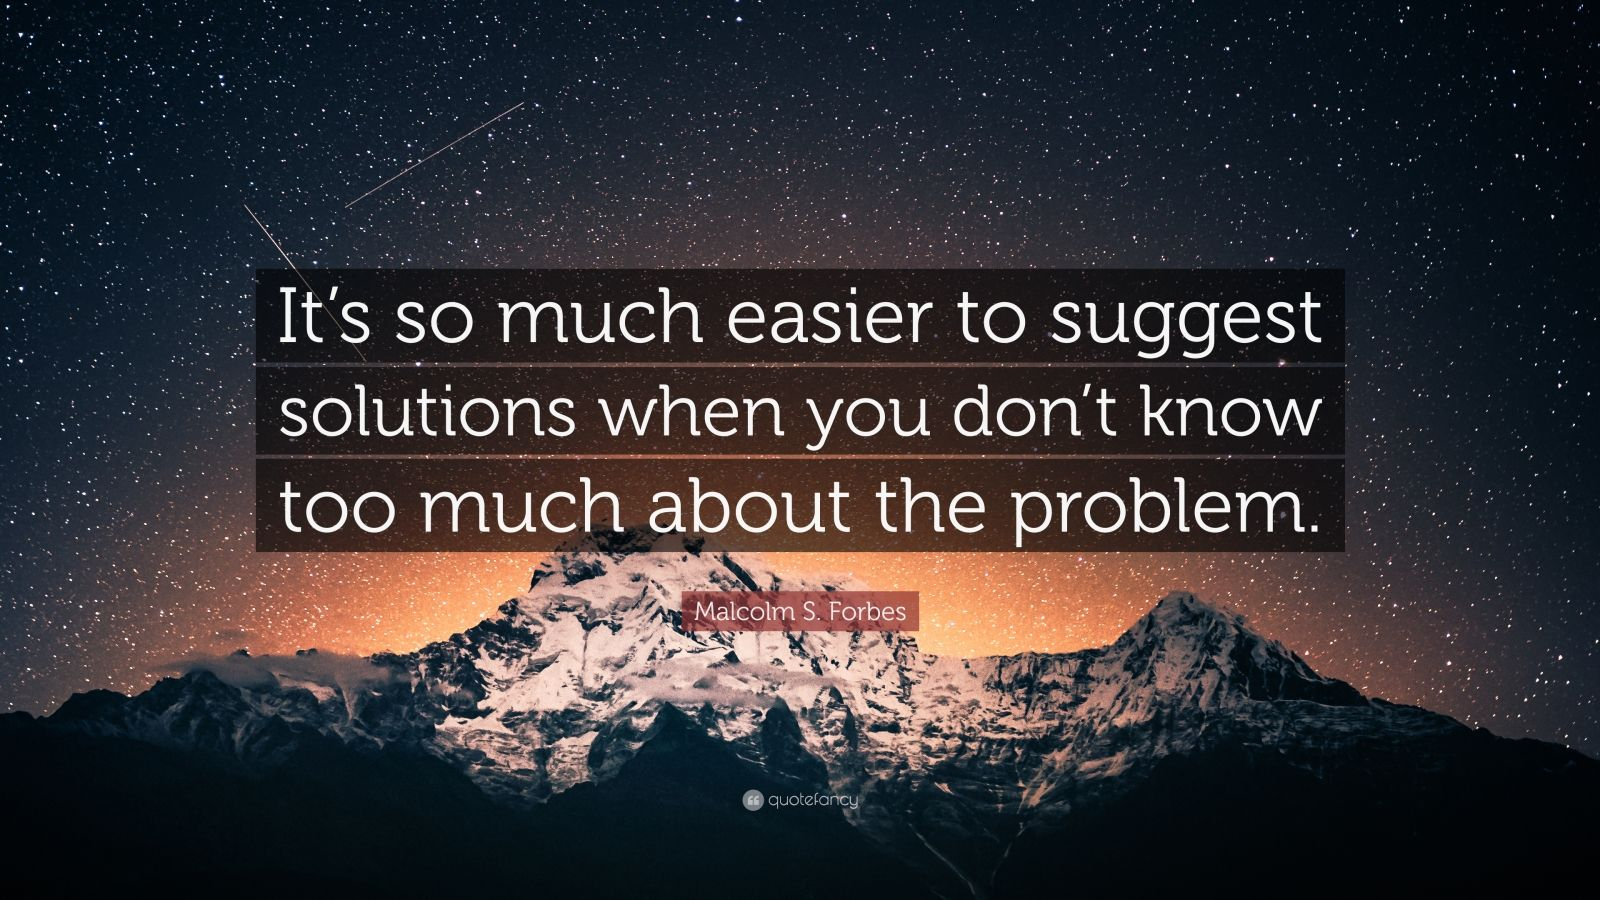 """Malcolm S. Forbes Quote: """"It's so much easier to suggest solutions when you don't know too much about the problem."""""""